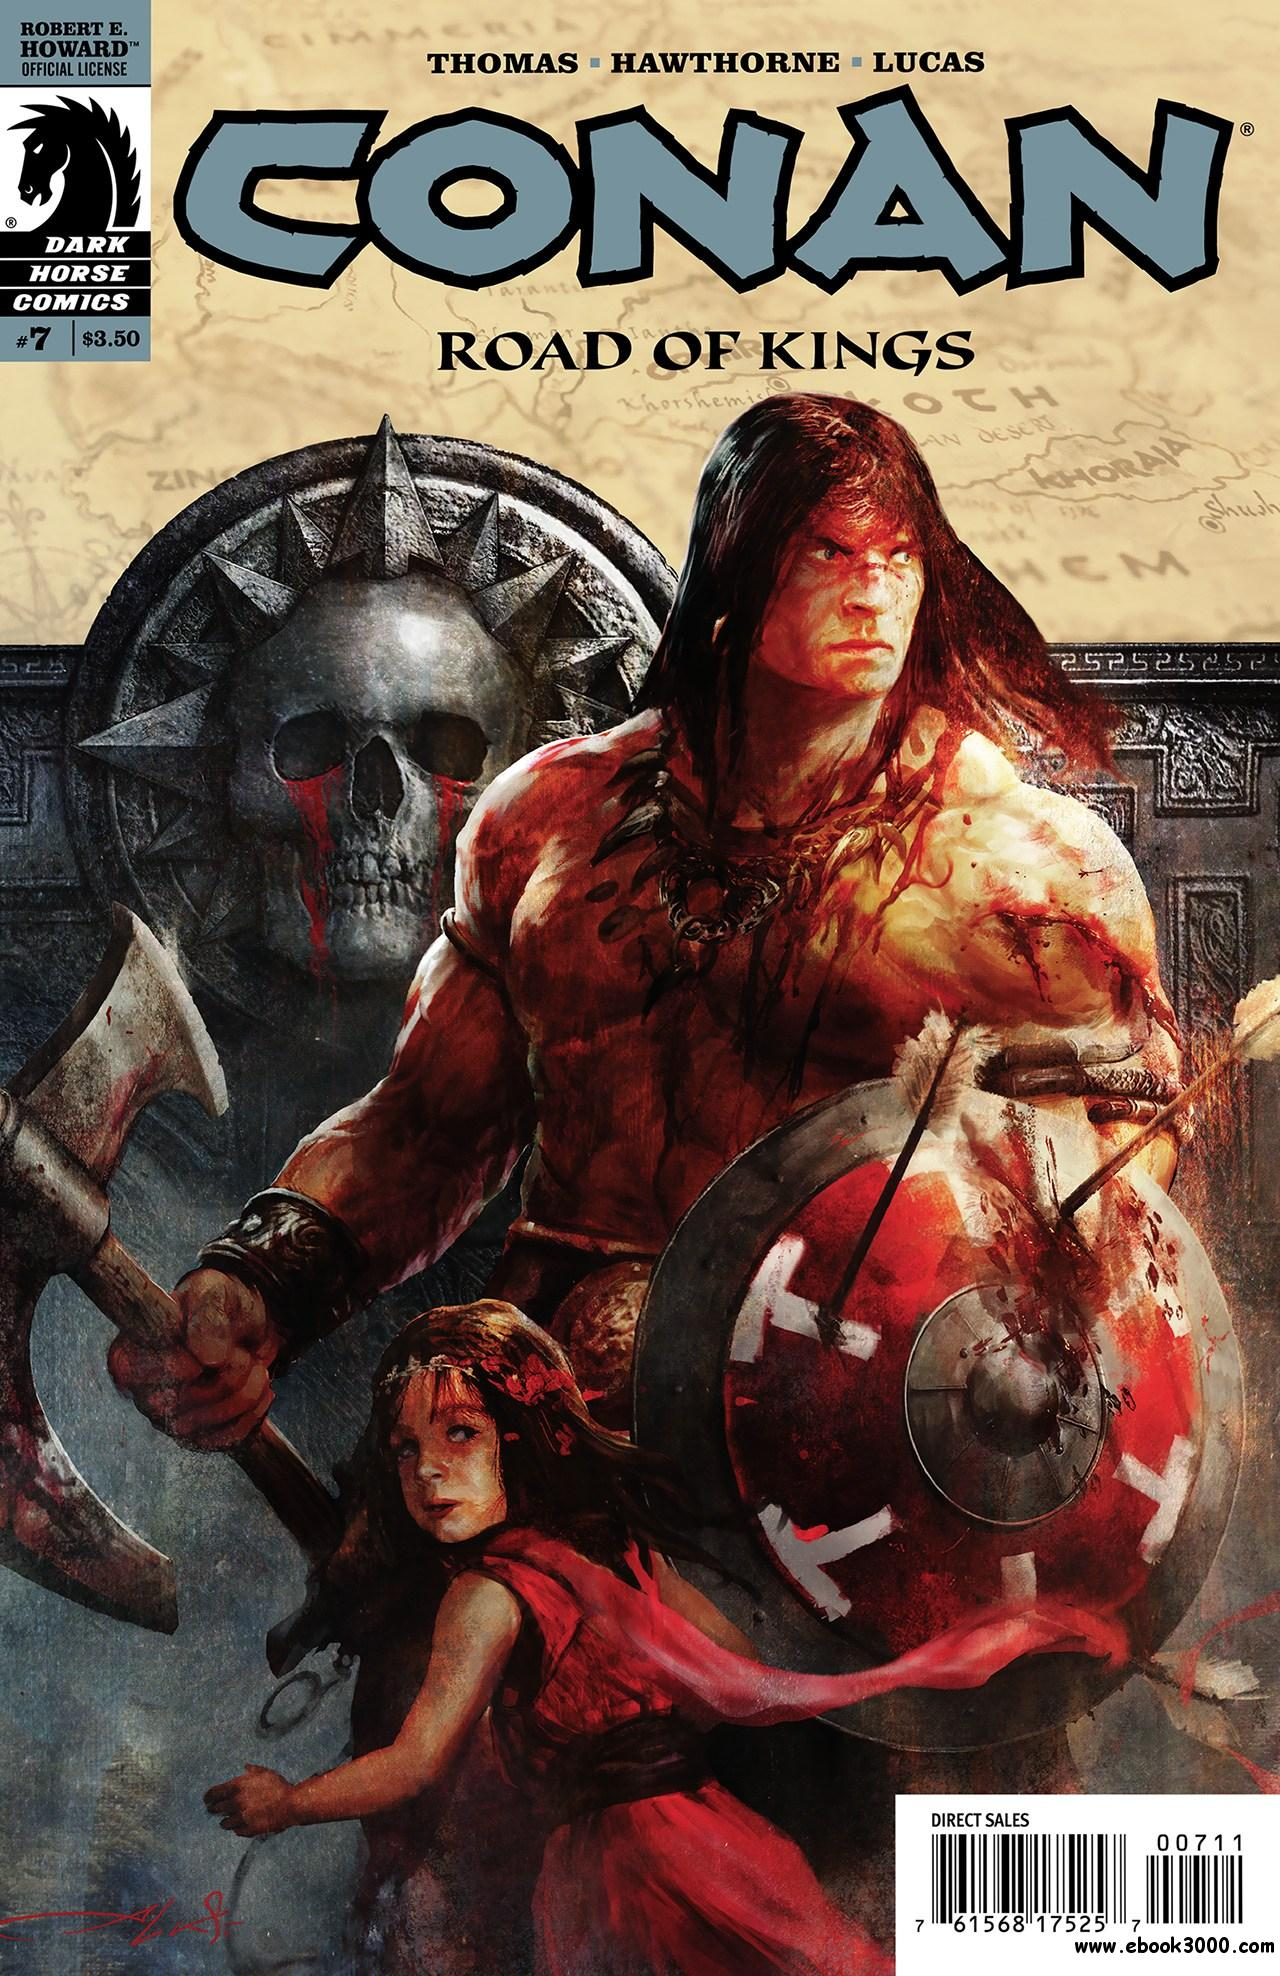 Conan - Road of Kings #7 (2011) free download